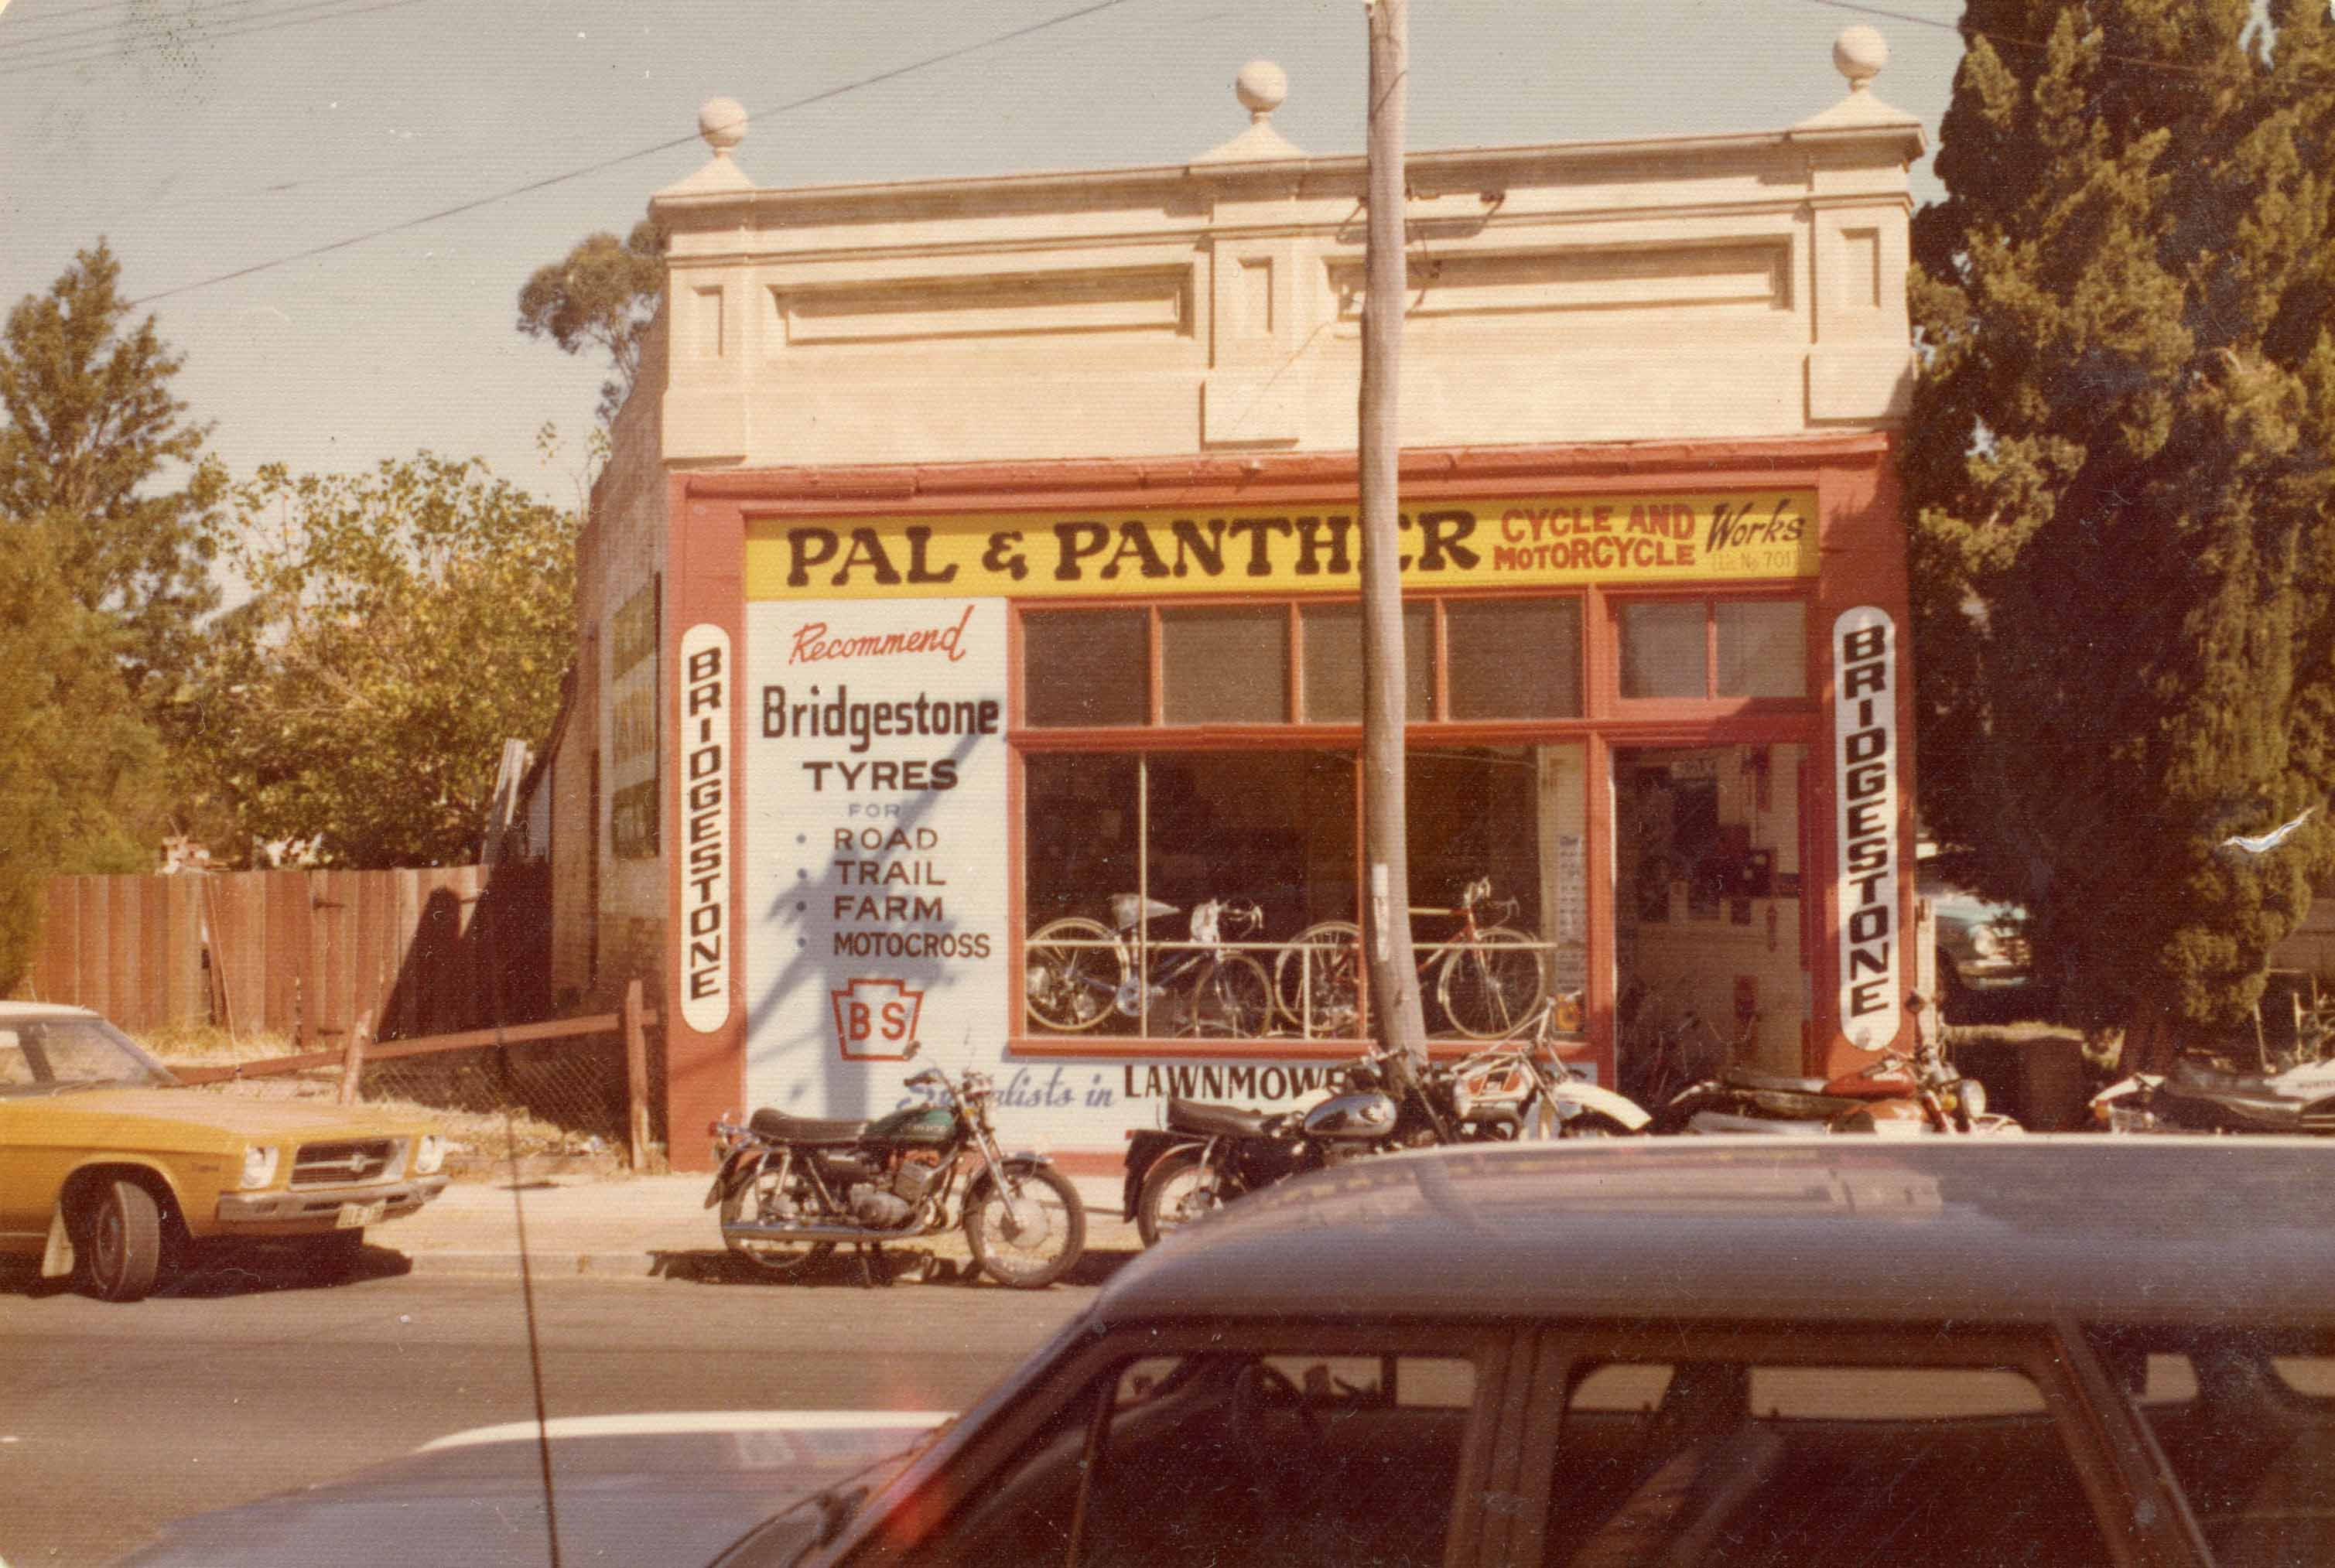 153. Pal & Panther, late 1970s